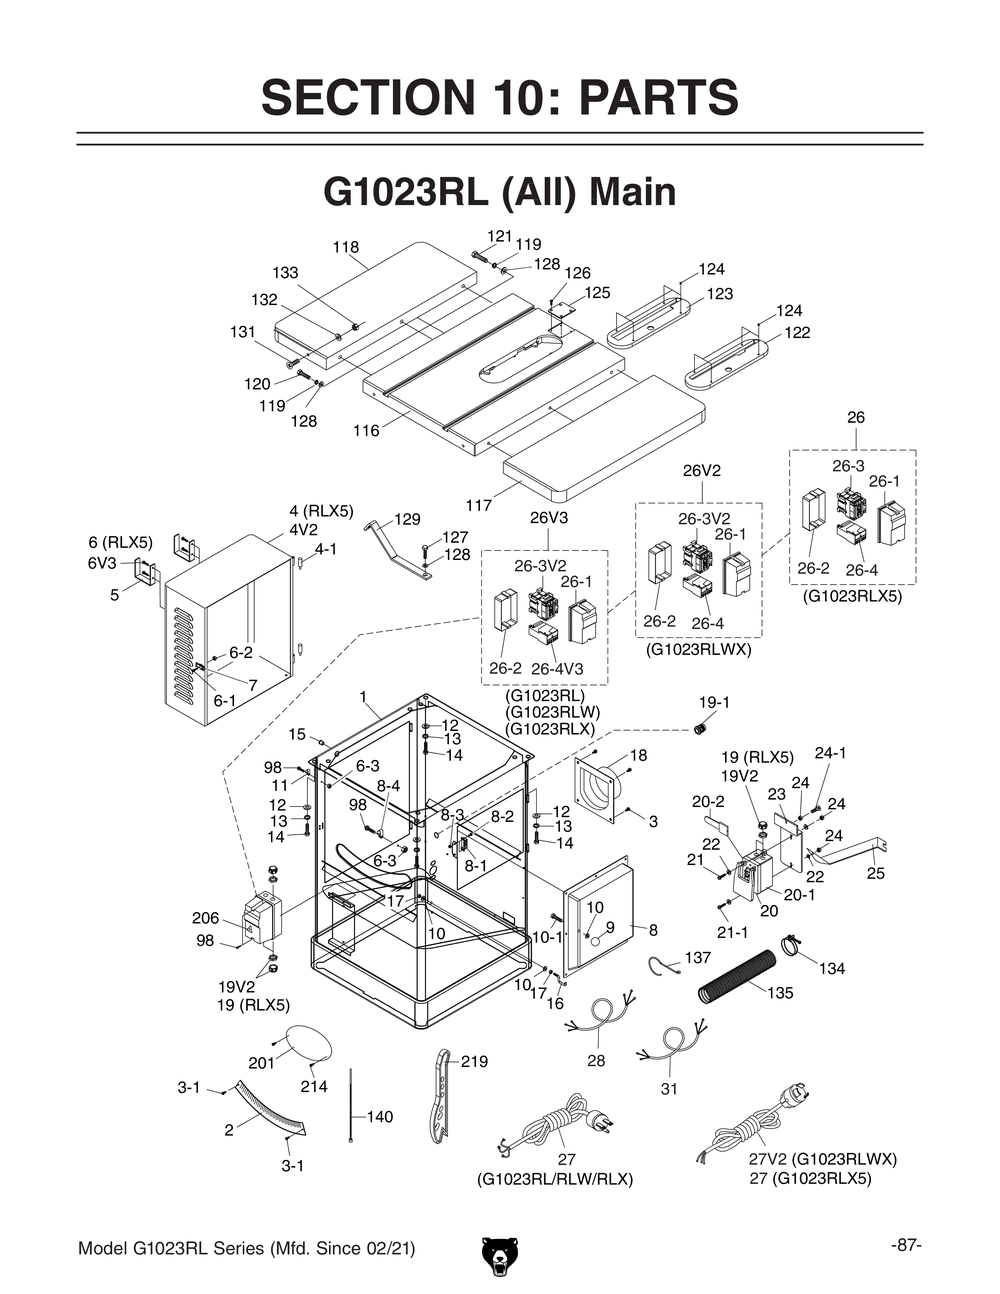 220 wiring diagram for 2 hp grizzly table saw 45 wiring diagram g1023rlpl11000 shop tools and machinery at grizzly com 220 wiring diagram for 2 hp grizzly table greentooth